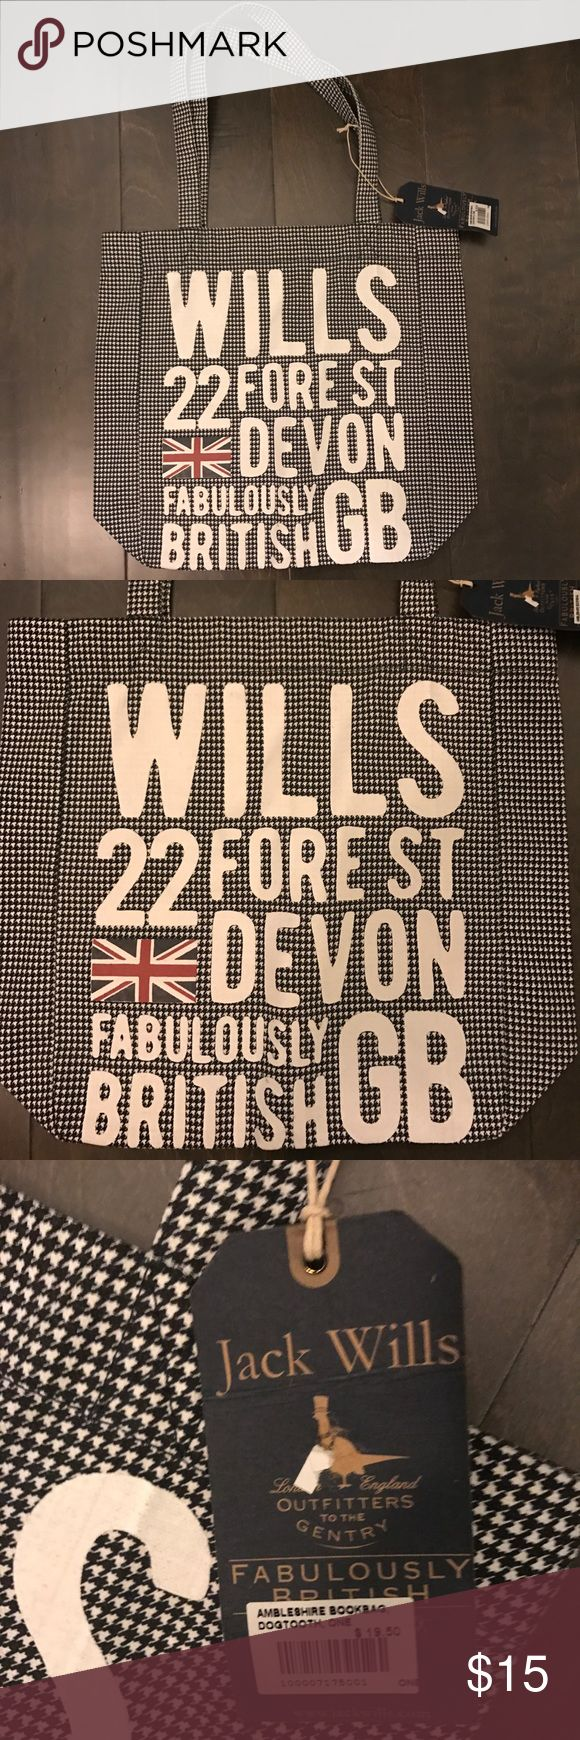 Jack Wills Bag New with tags Jack Wills bag. Never used. In excellent condition. Jack Wills Bags Totes